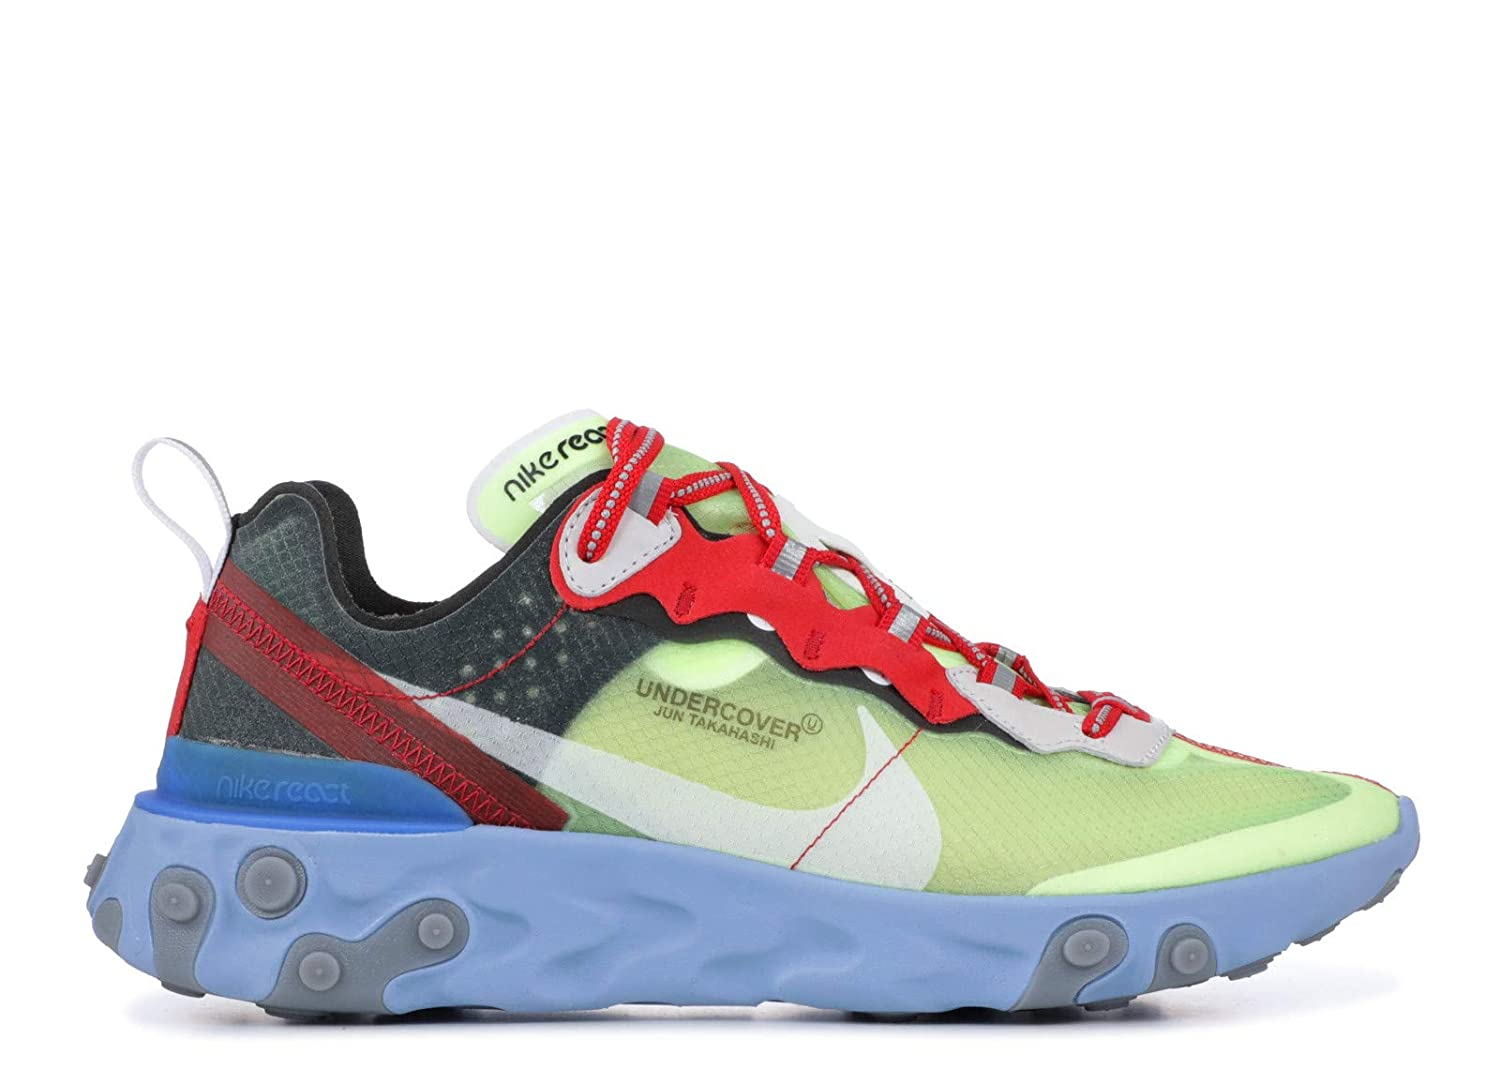 timeless design af4e5 20682 Amazon.com   Nike React Element 87 Undercover - US 6.5   Shoes